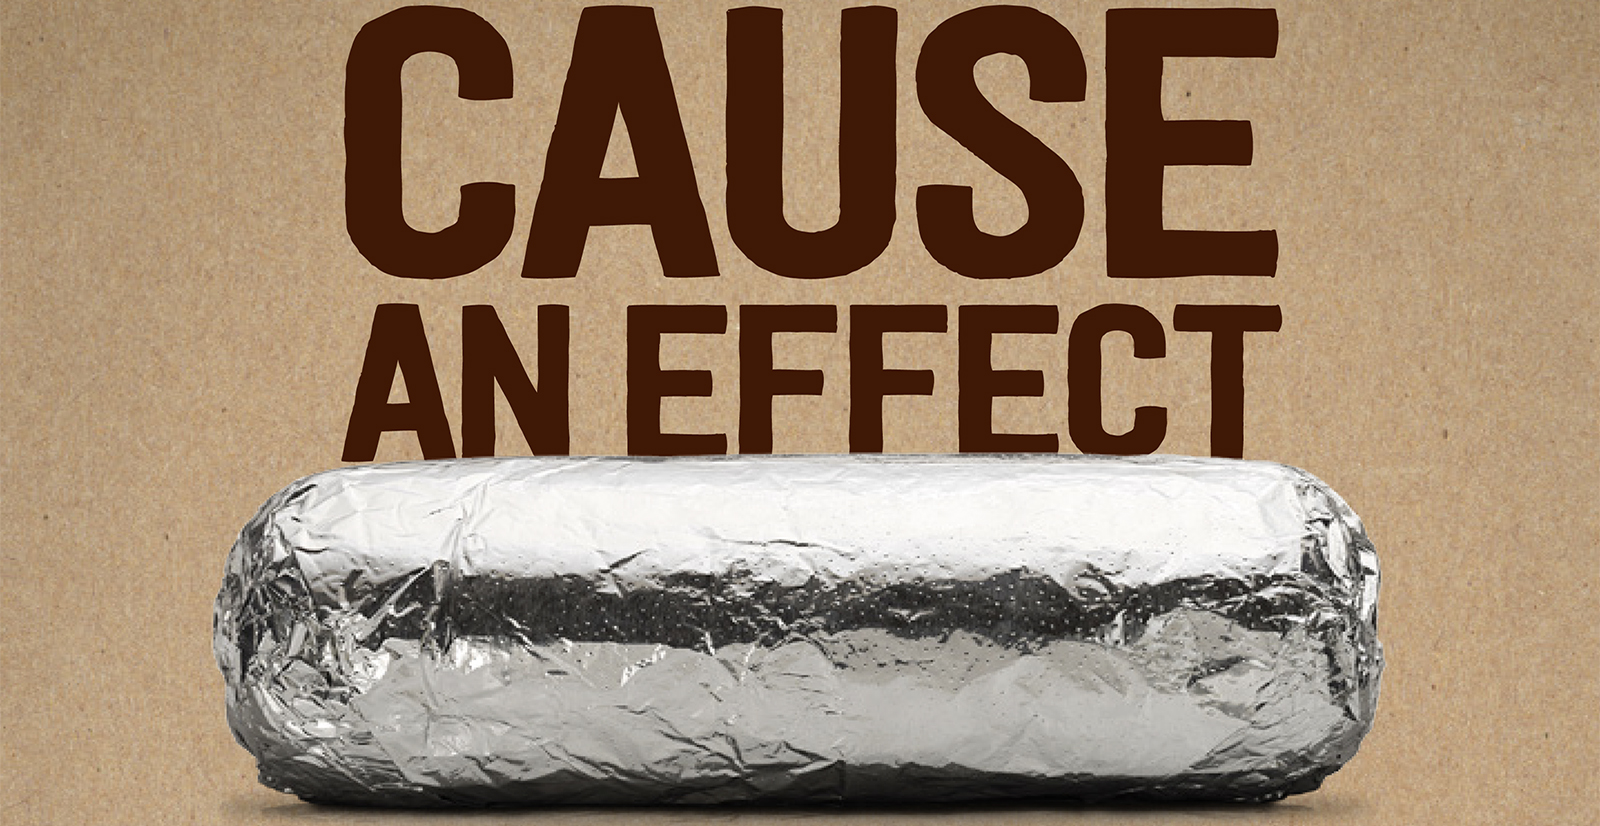 BMW Dallas Marathon Chipotle Fundraiser